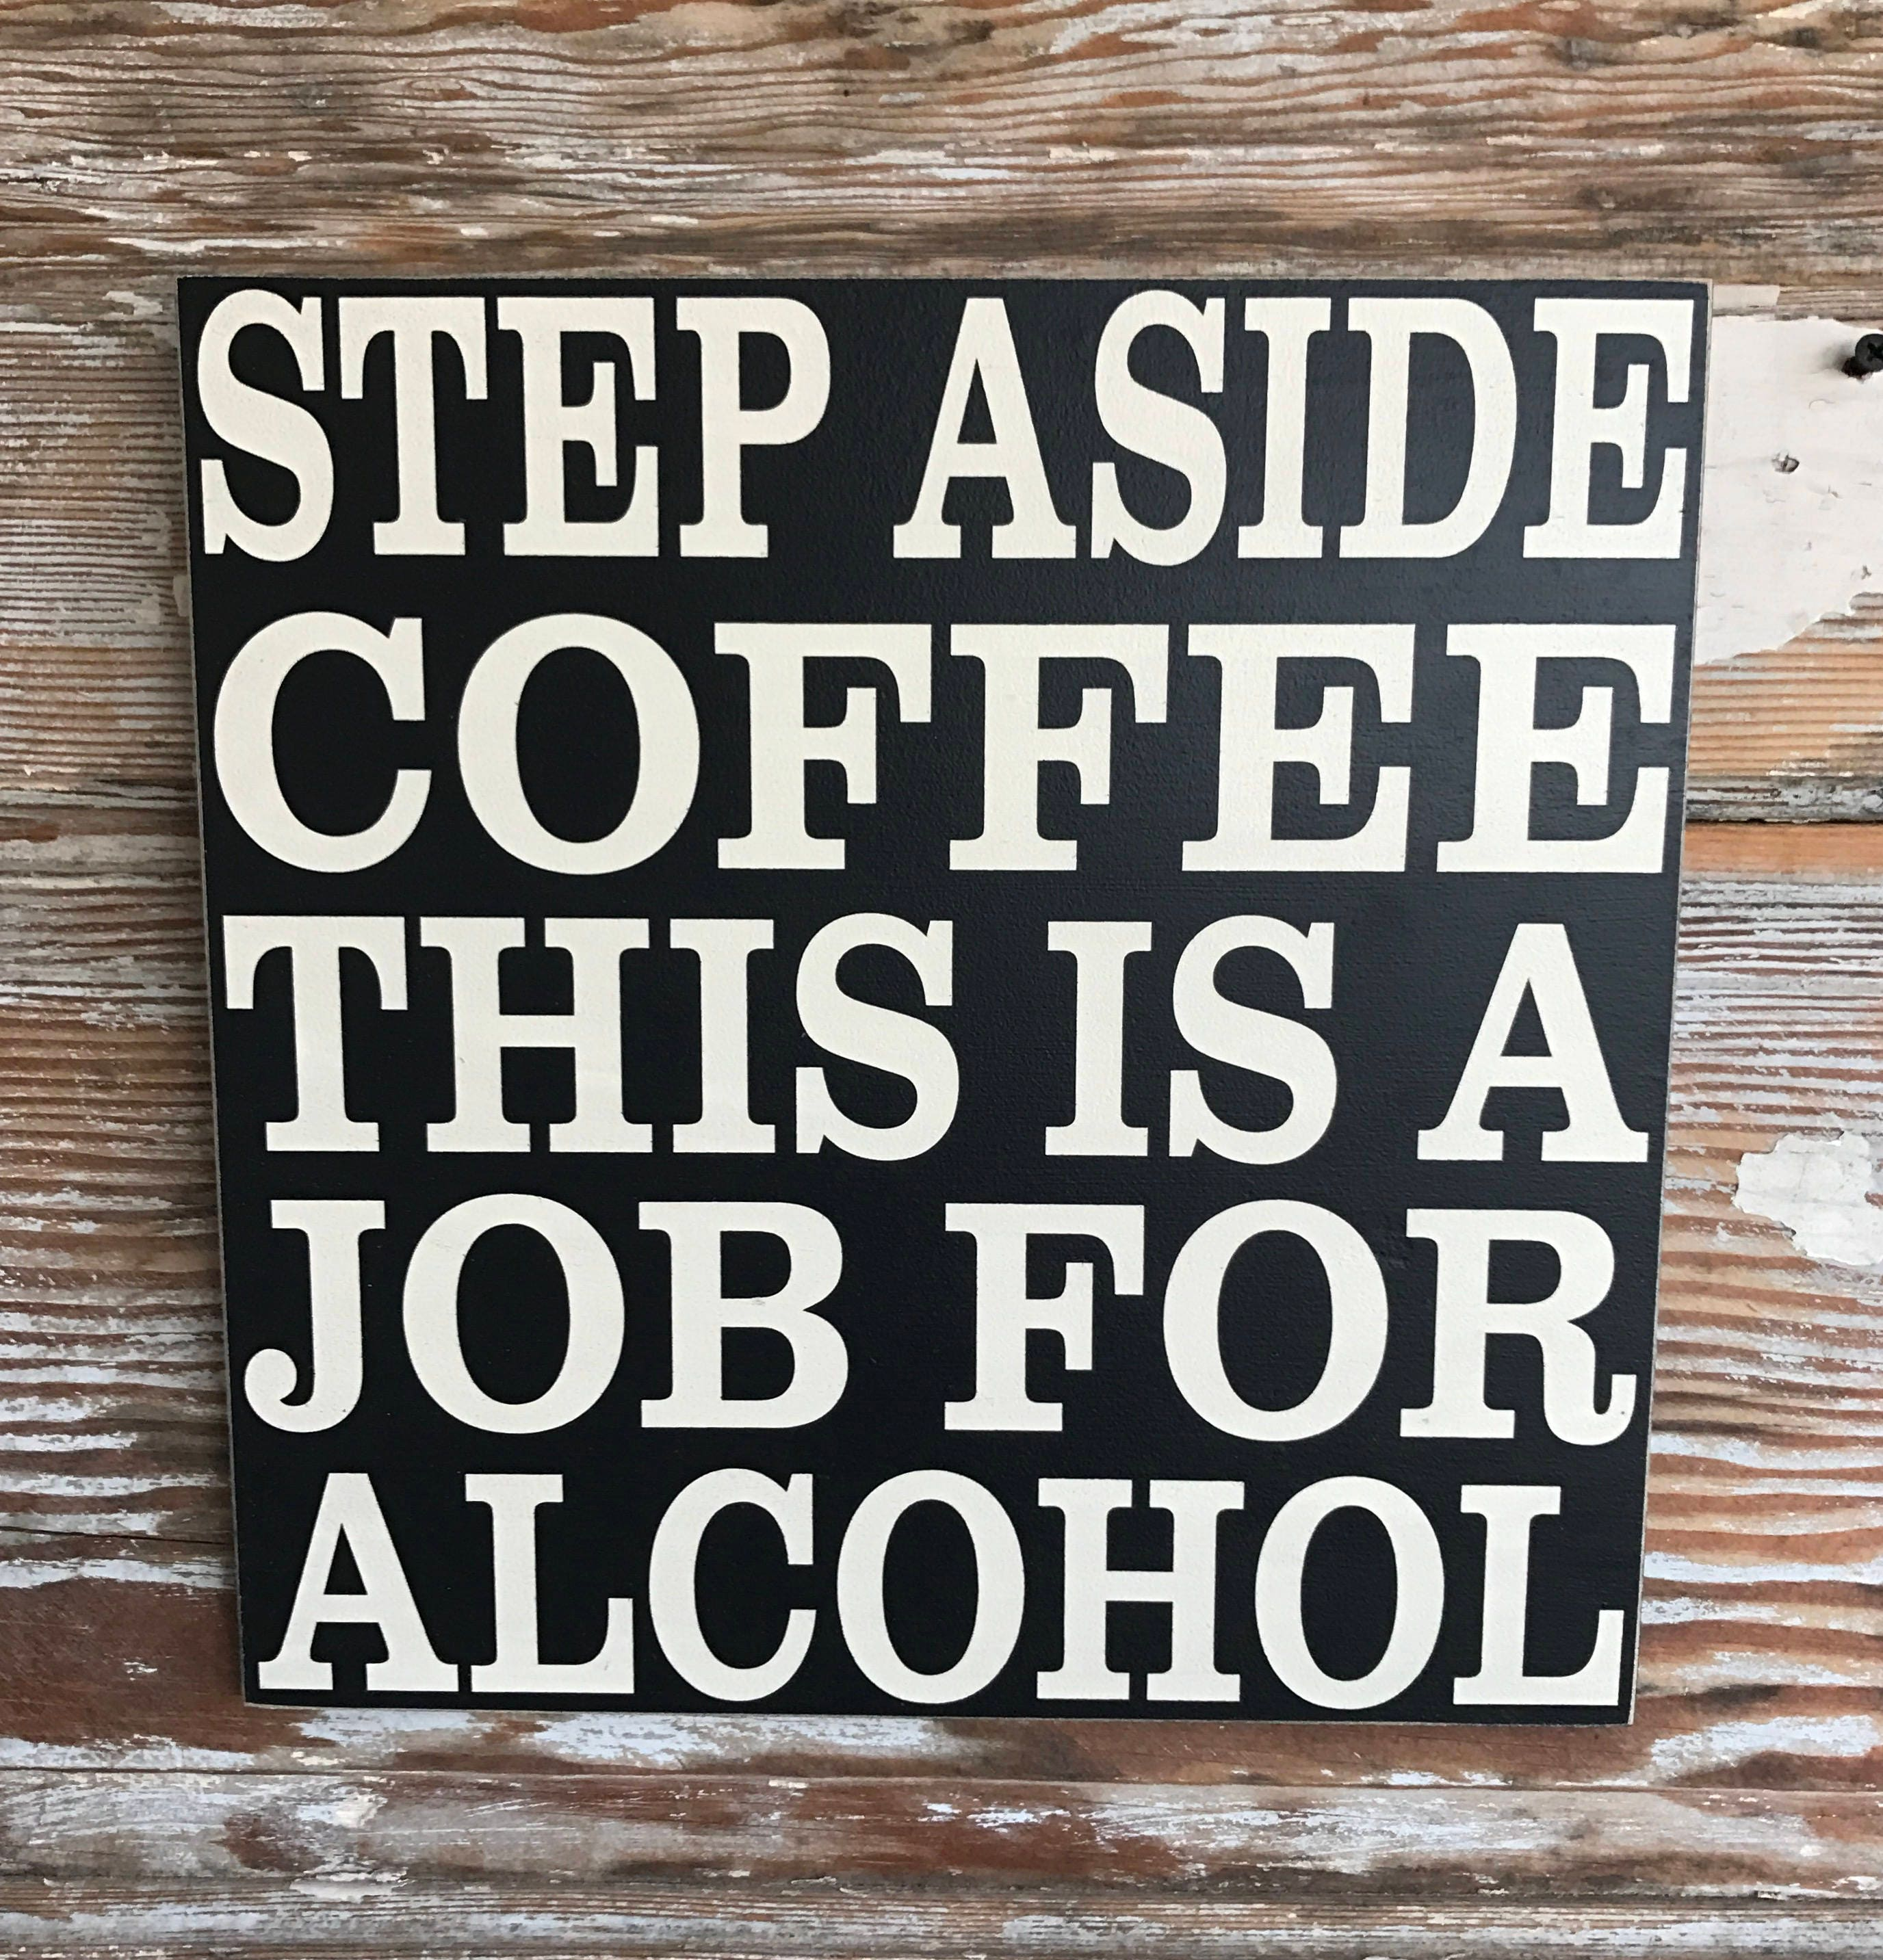 a2b1665d5 Step Aside Coffee This is a Job For Alcohol wood Sign 12x12. | Etsy